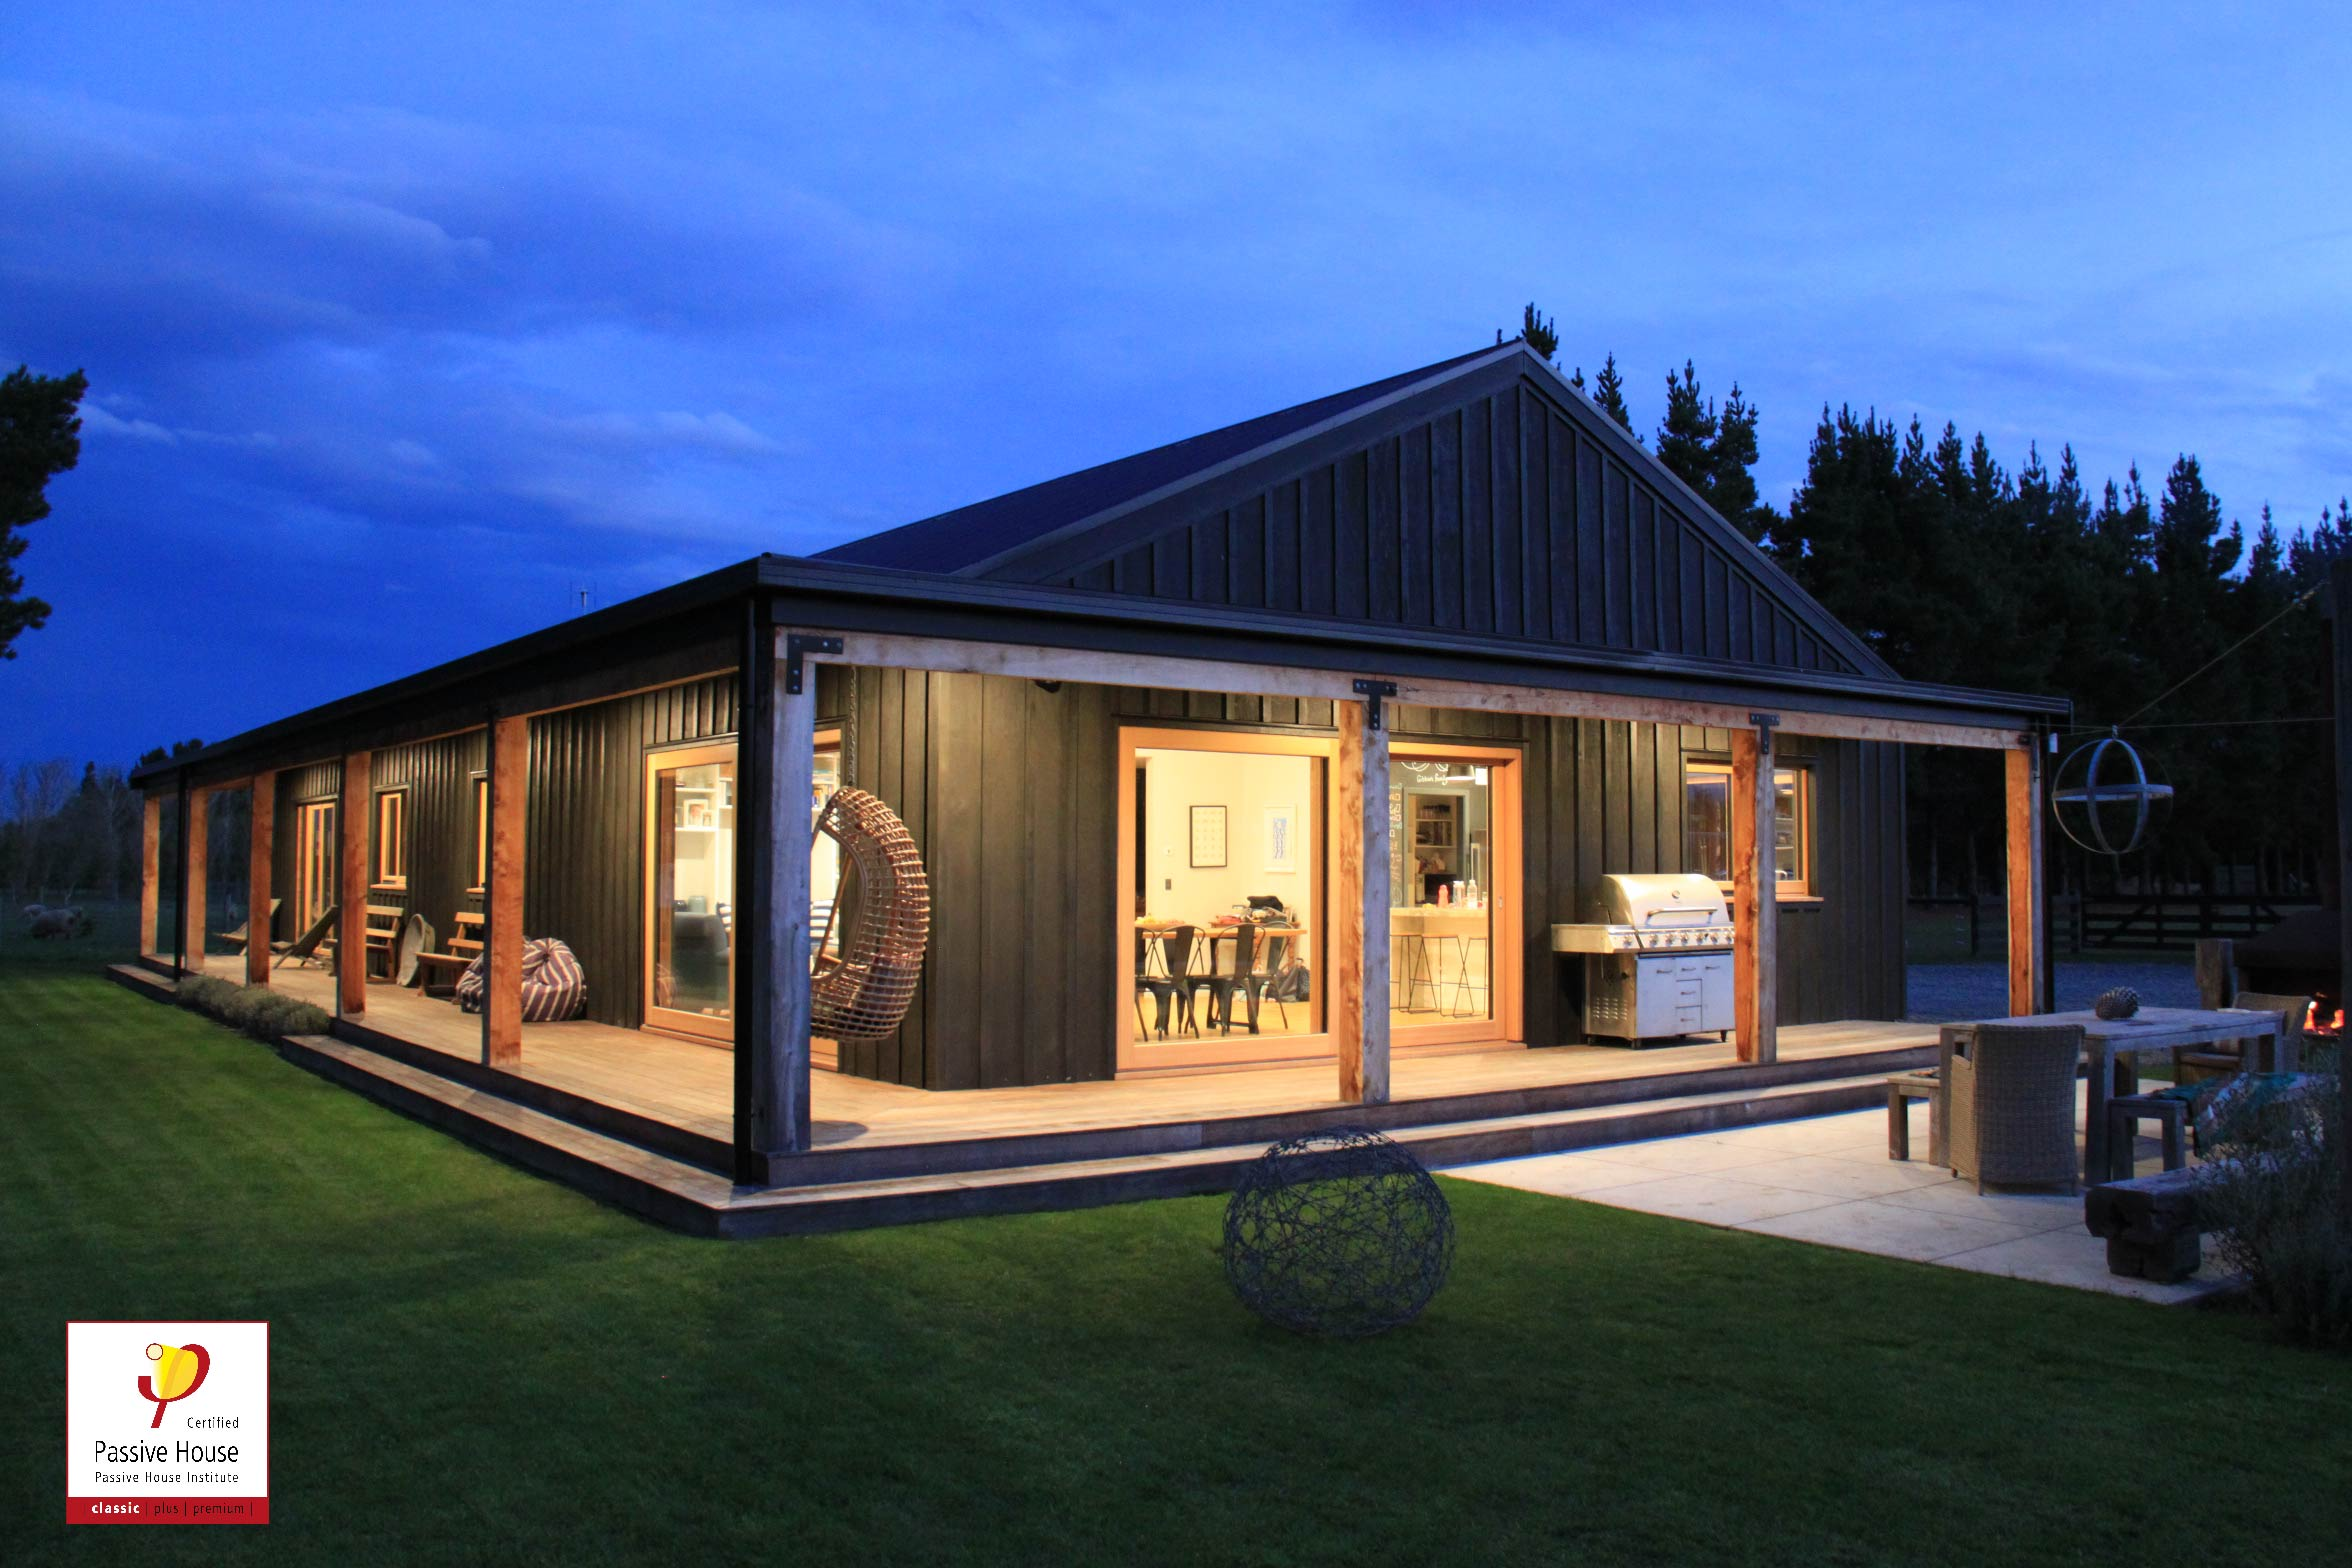 Service Extension: Passive House Certification by Denise Martin